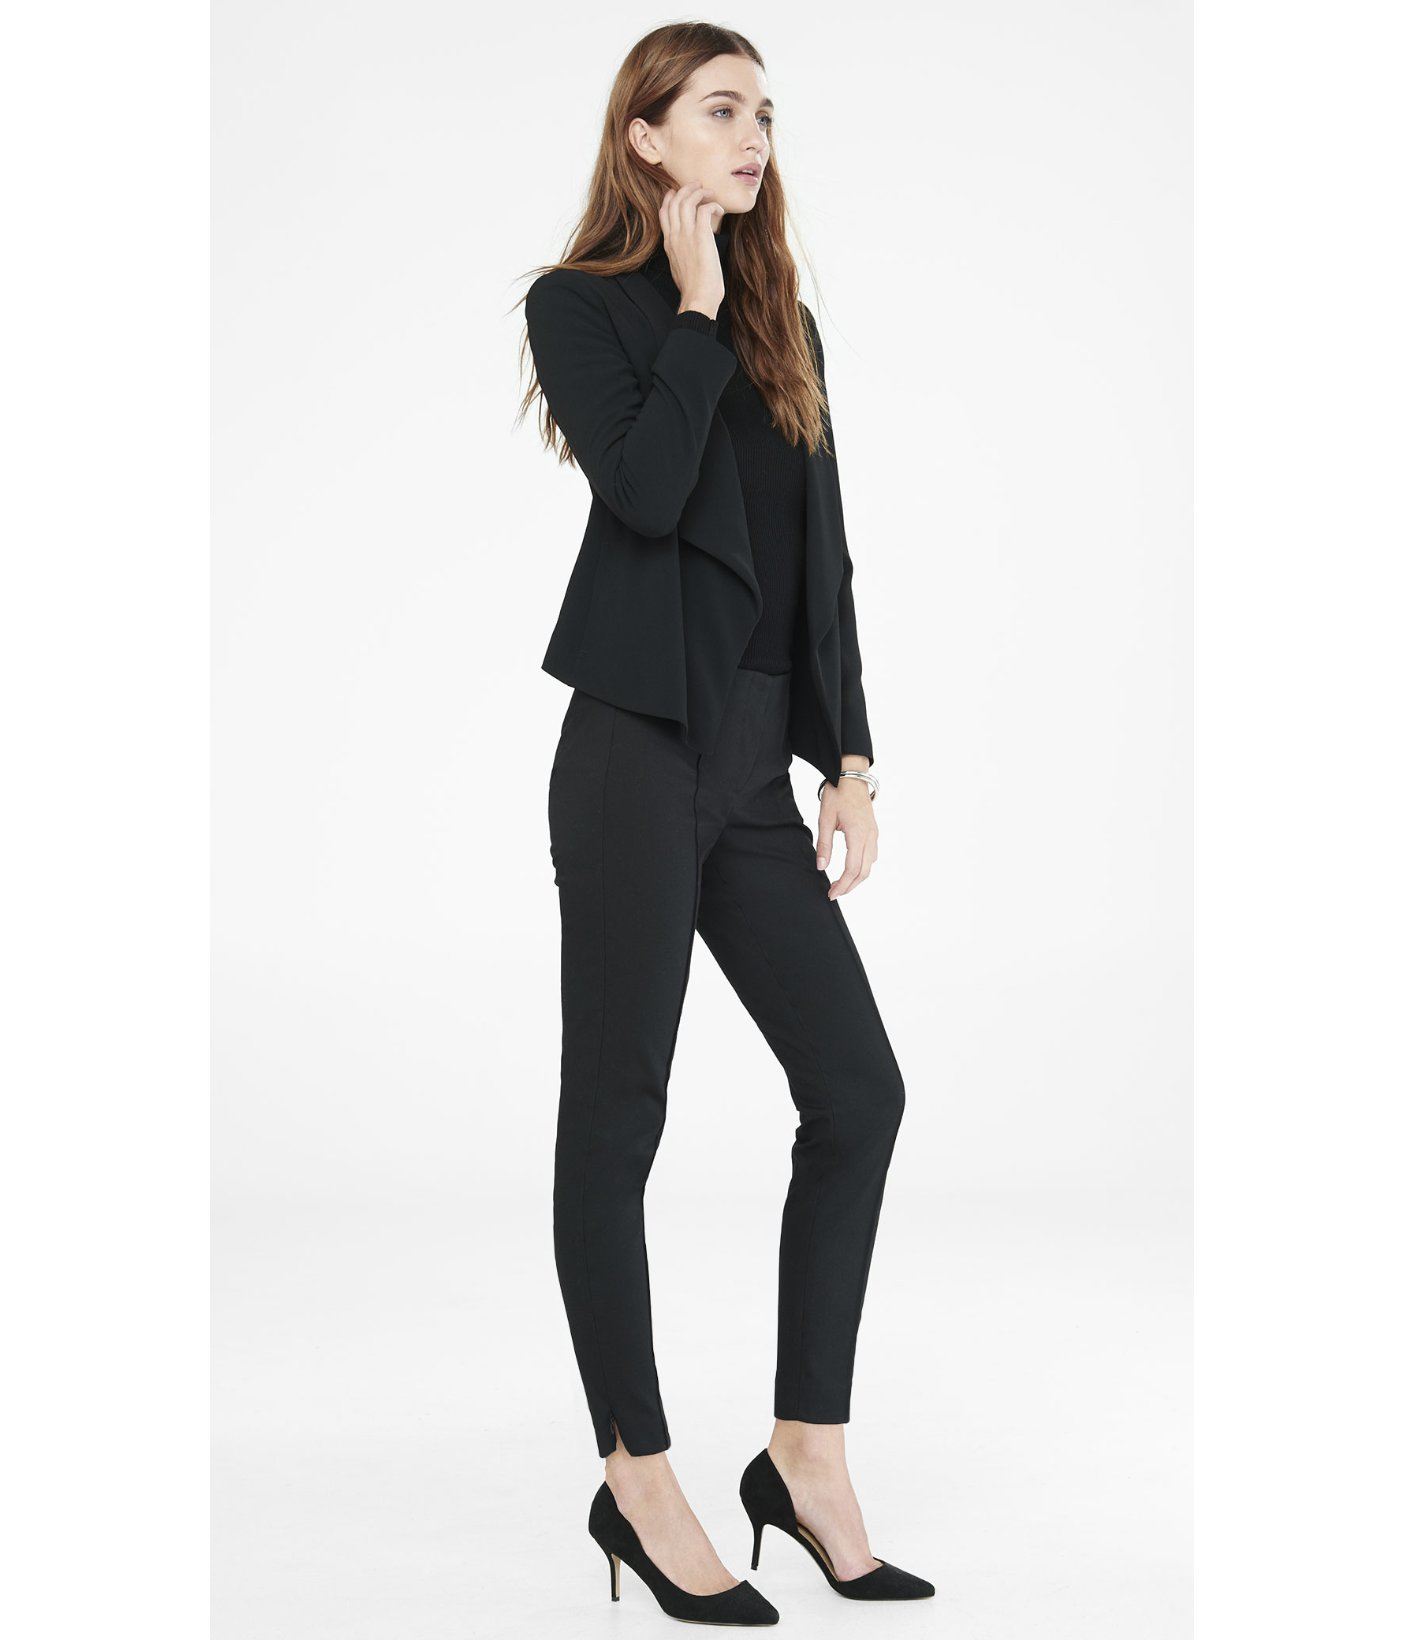 Express Pintucked Hollywood Waistband Zip Ankle Pant in Black